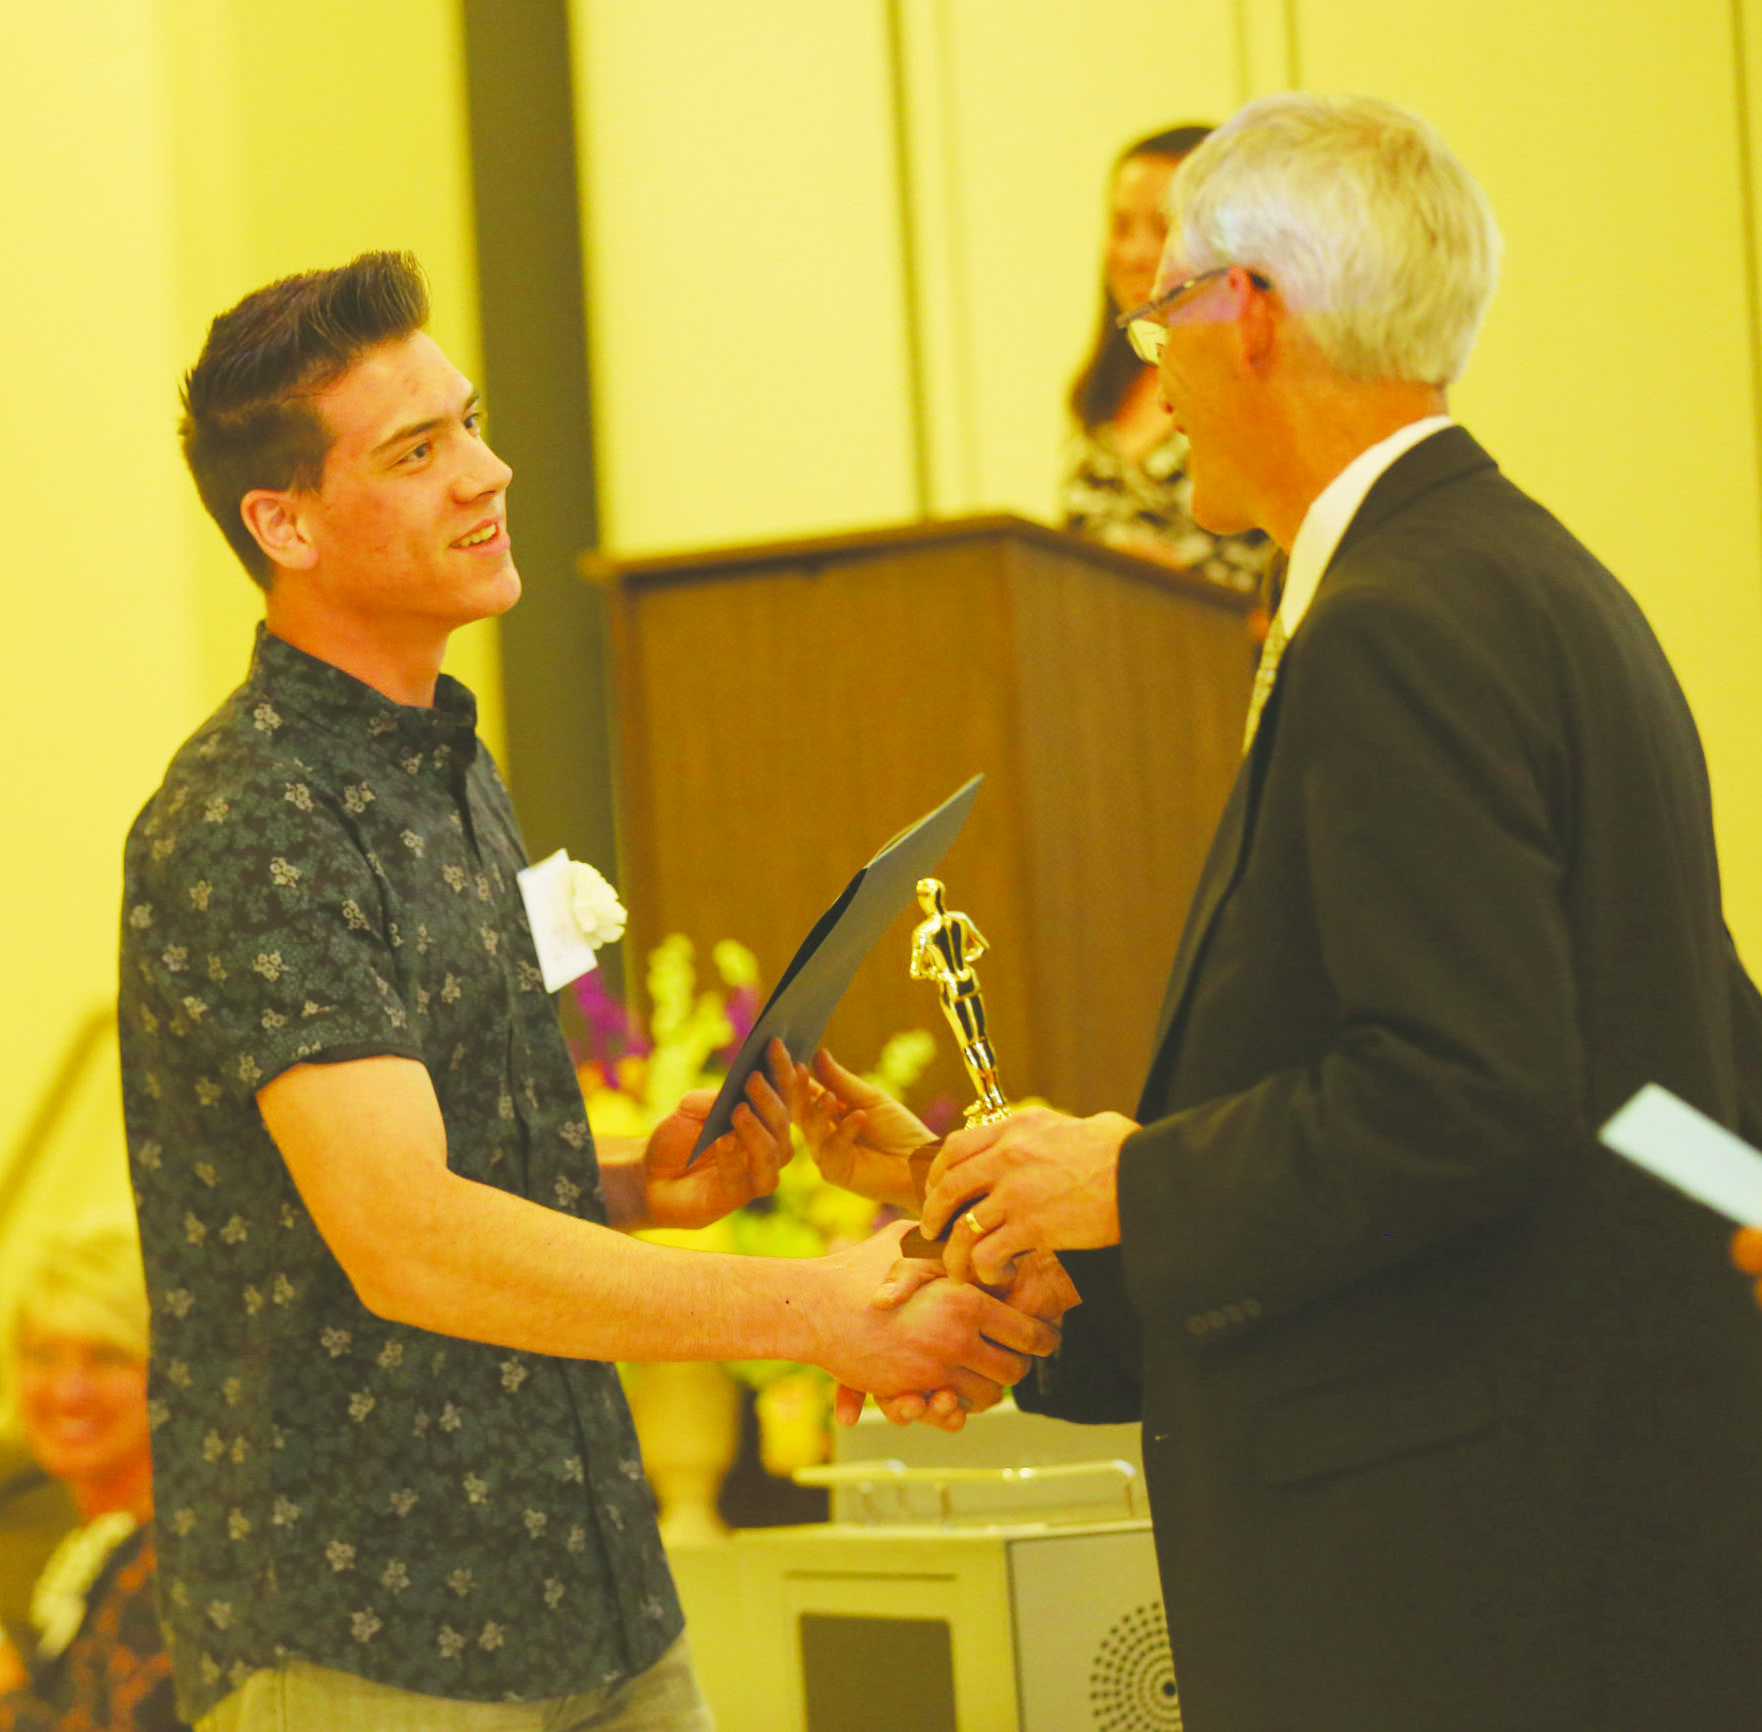 Jesse Hall, Adams County Outstanding Student, left, receives his award from Richard Seas, Superintendent of the Adams County/Ohio Valley School District.